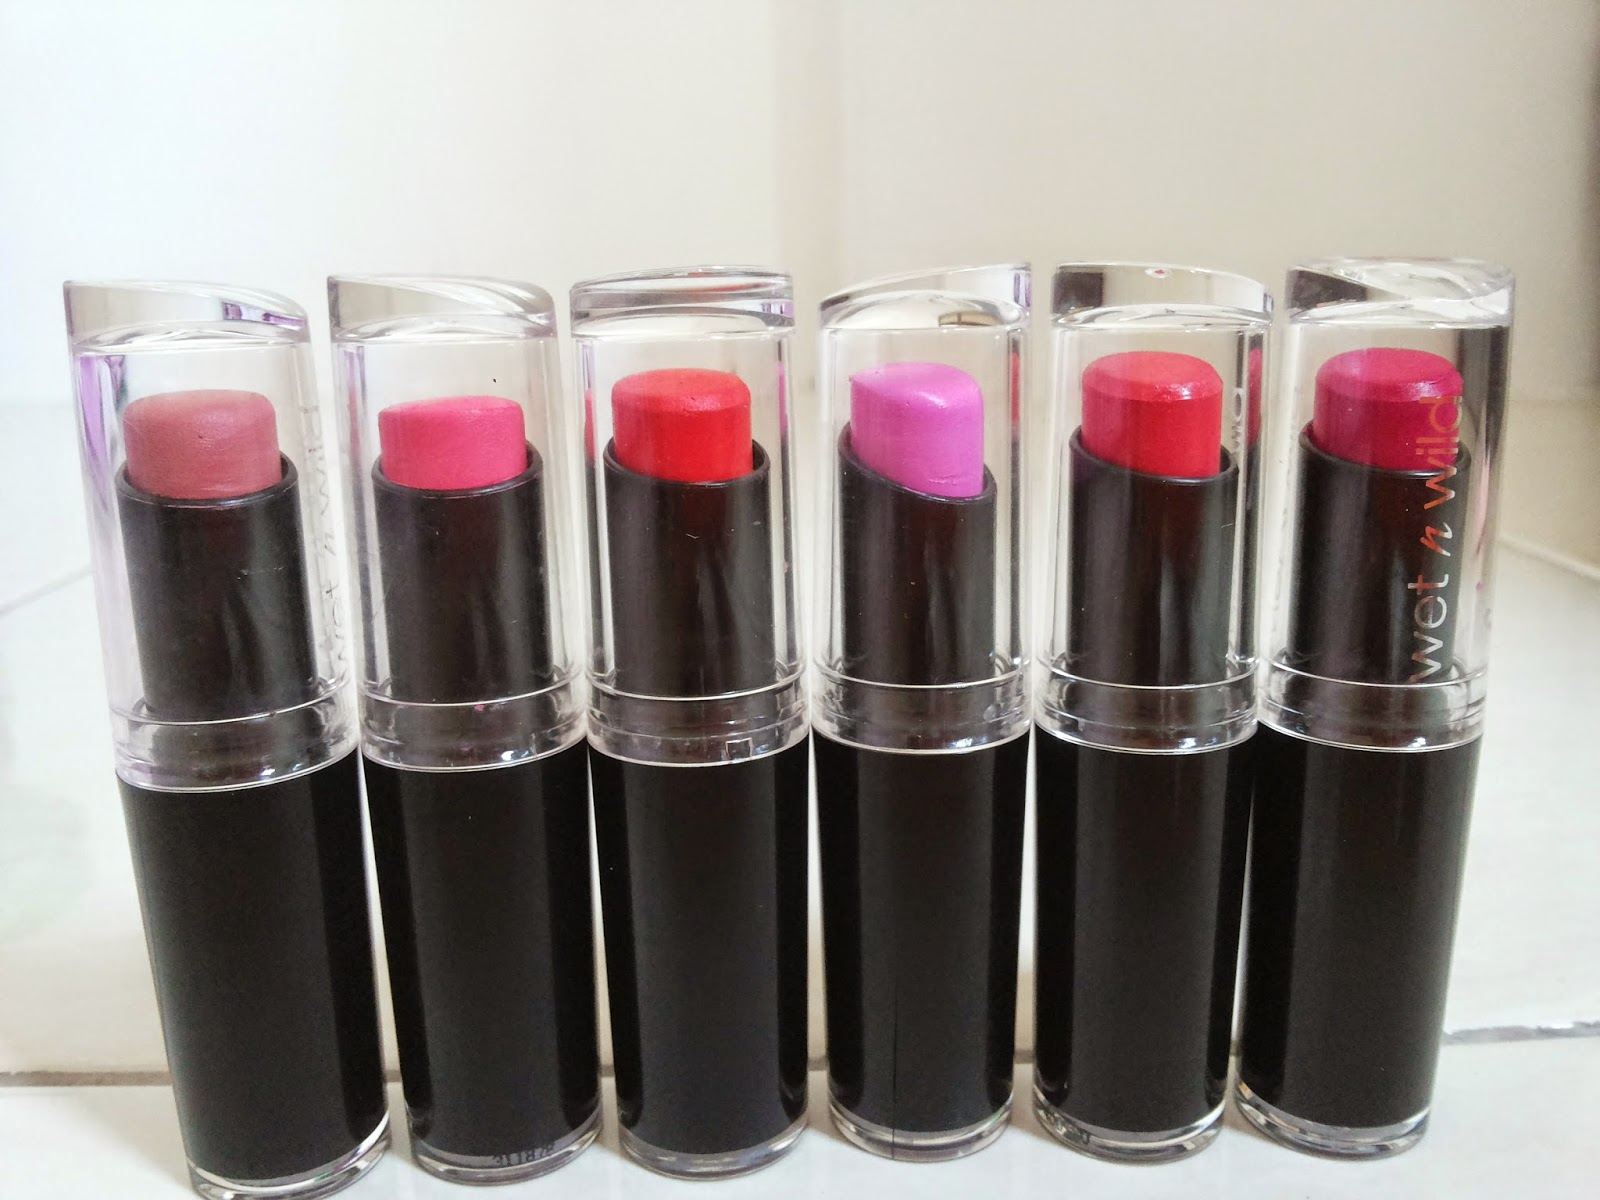 Wet n wild megalast lipstick Pinkerbell Dollhouse pink Just peachy Purty persimmon Coral ine Cherry picking